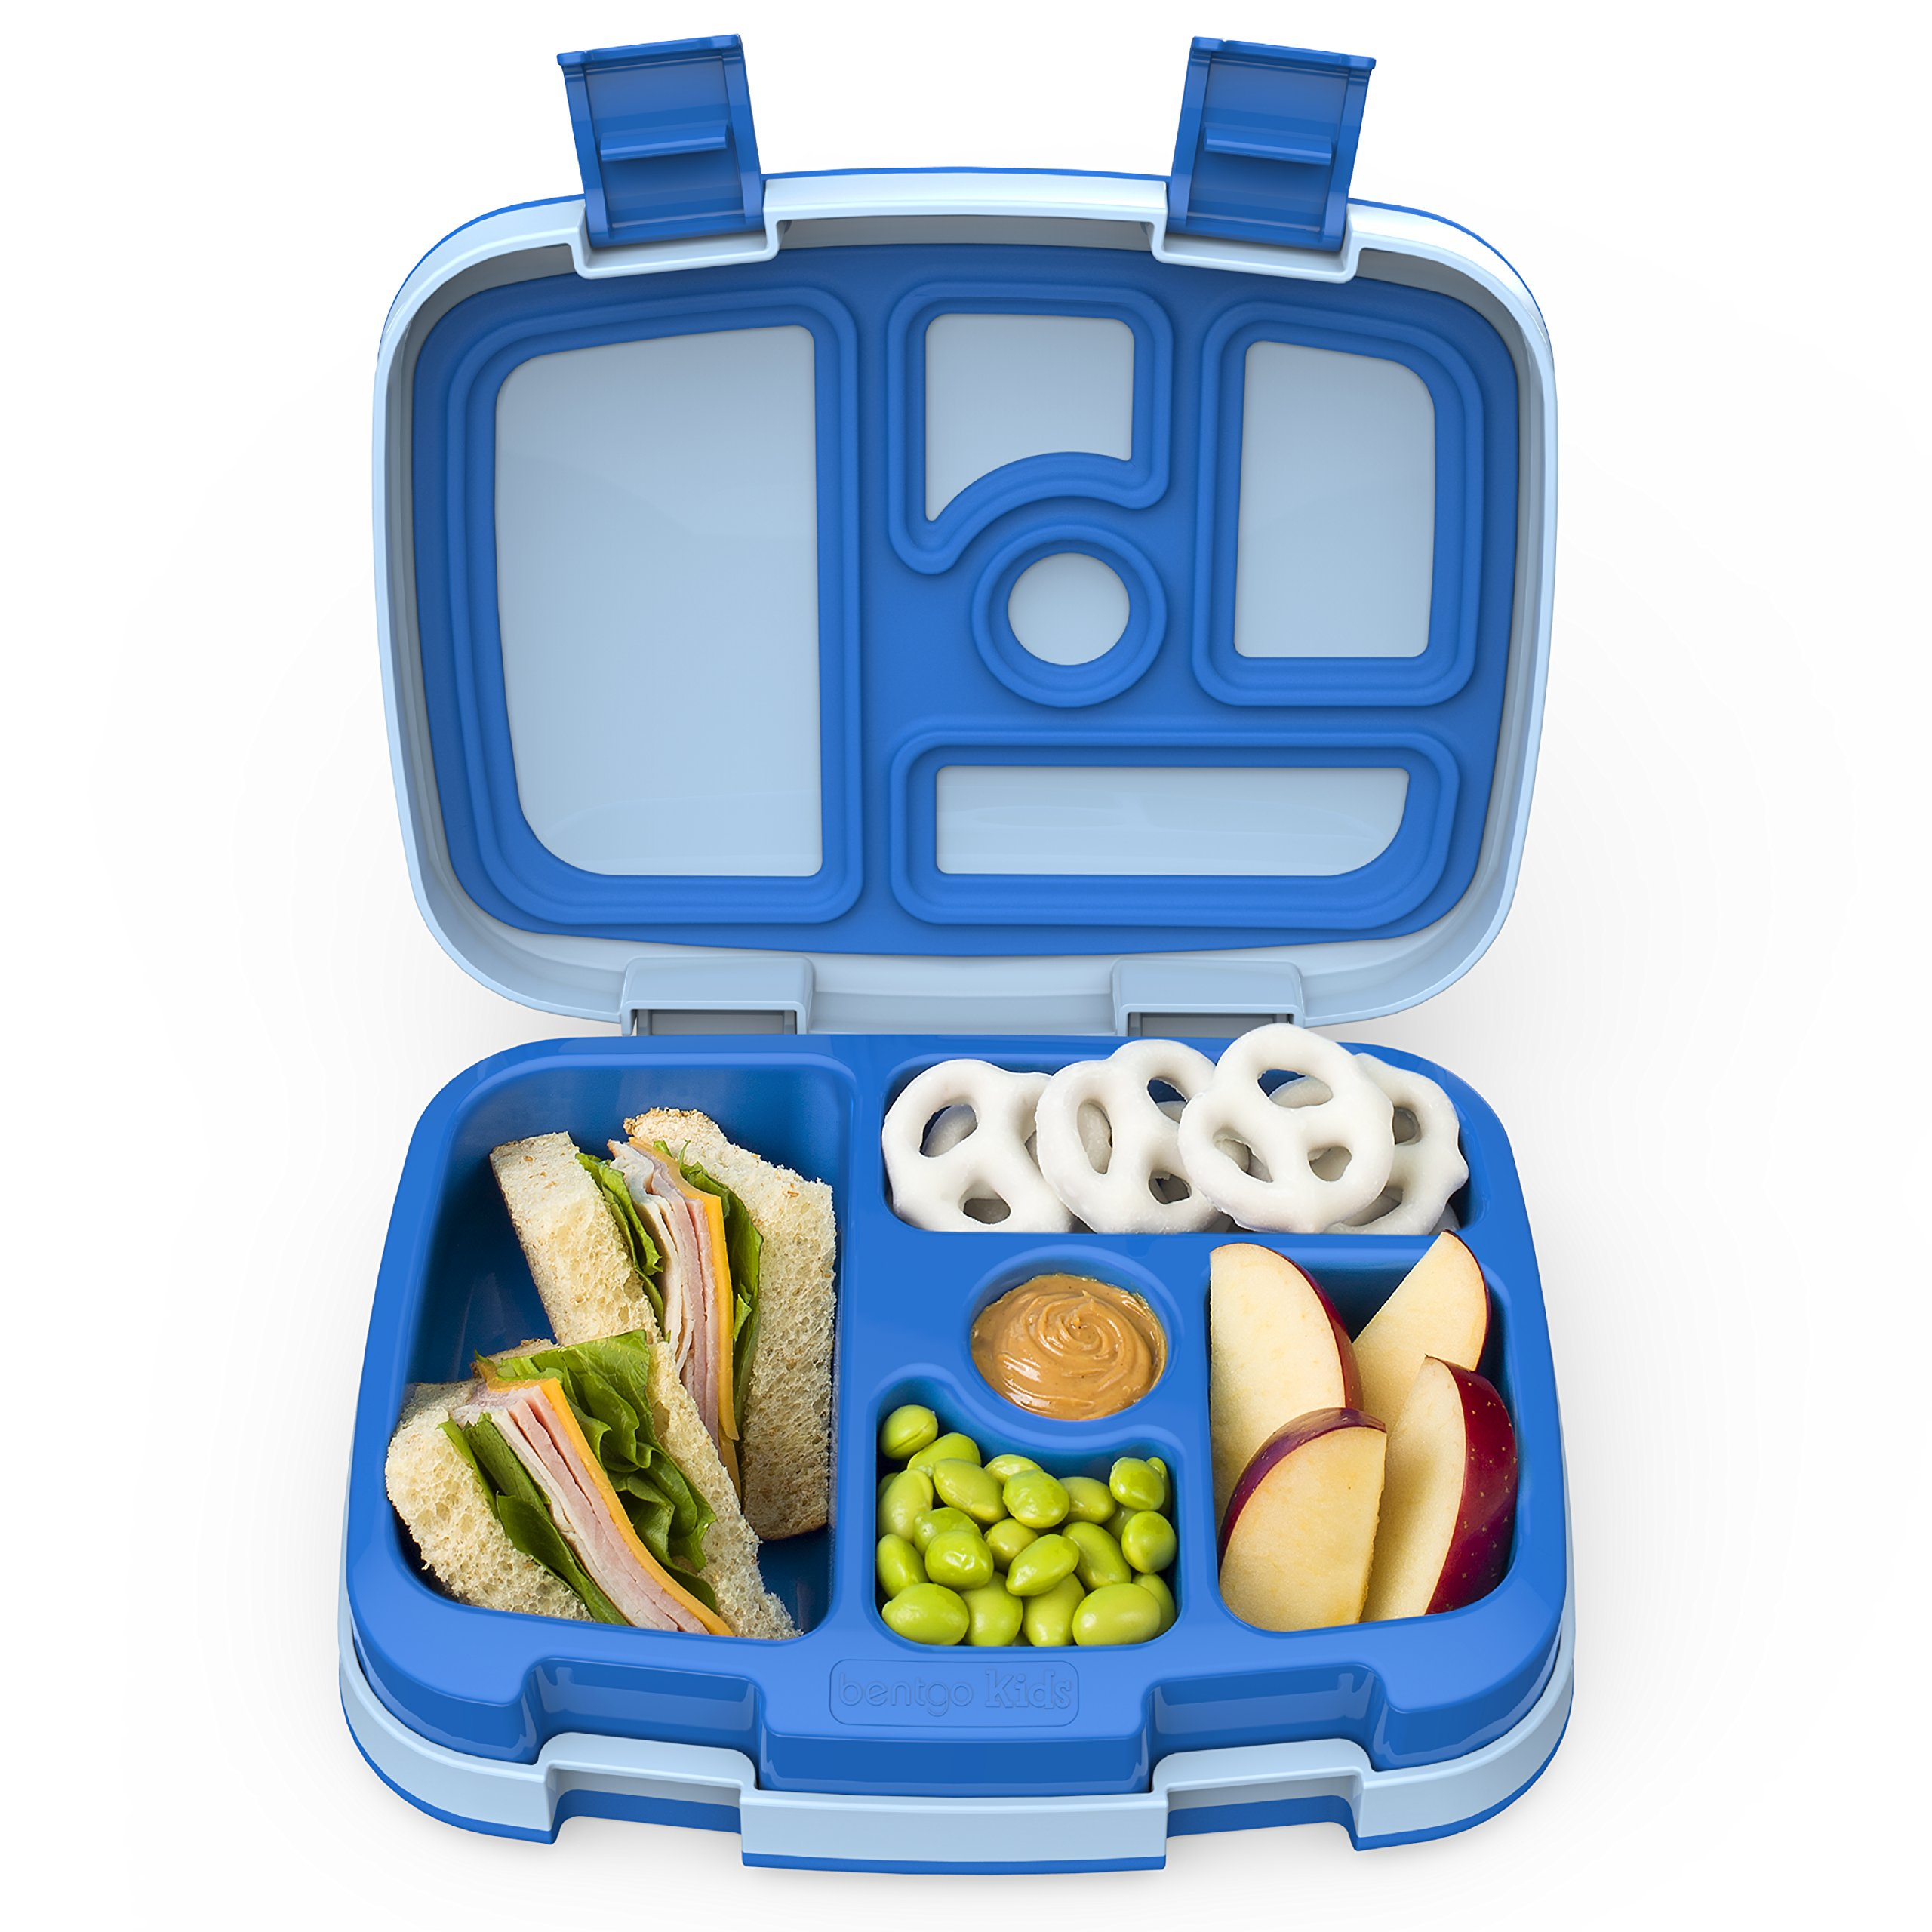 Bentgo Kids Childrens Lunch Box - Bento-Styled Lunch Solution Offers Durable Leak-Proof On-the-Go Meal and Snack Packing